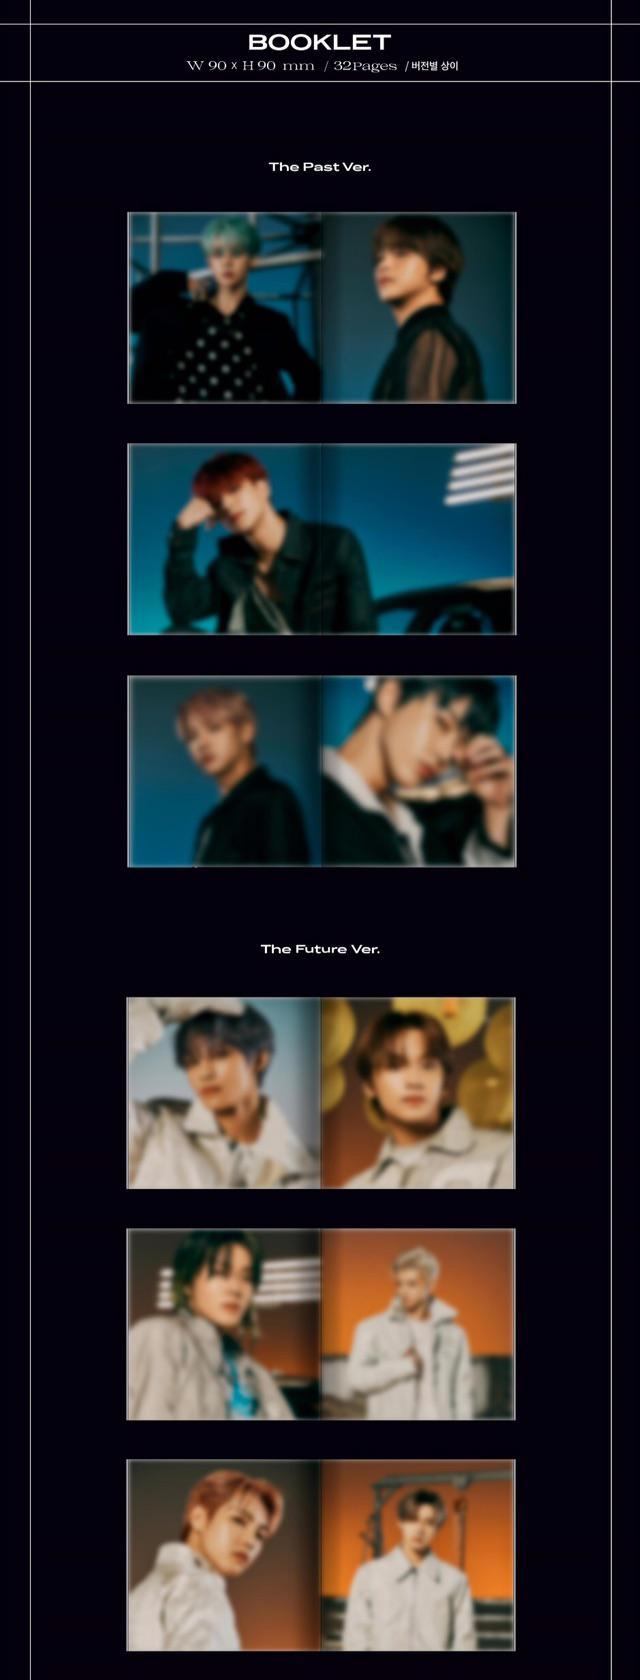 NCT - Resonance Part 1 - Kit Album